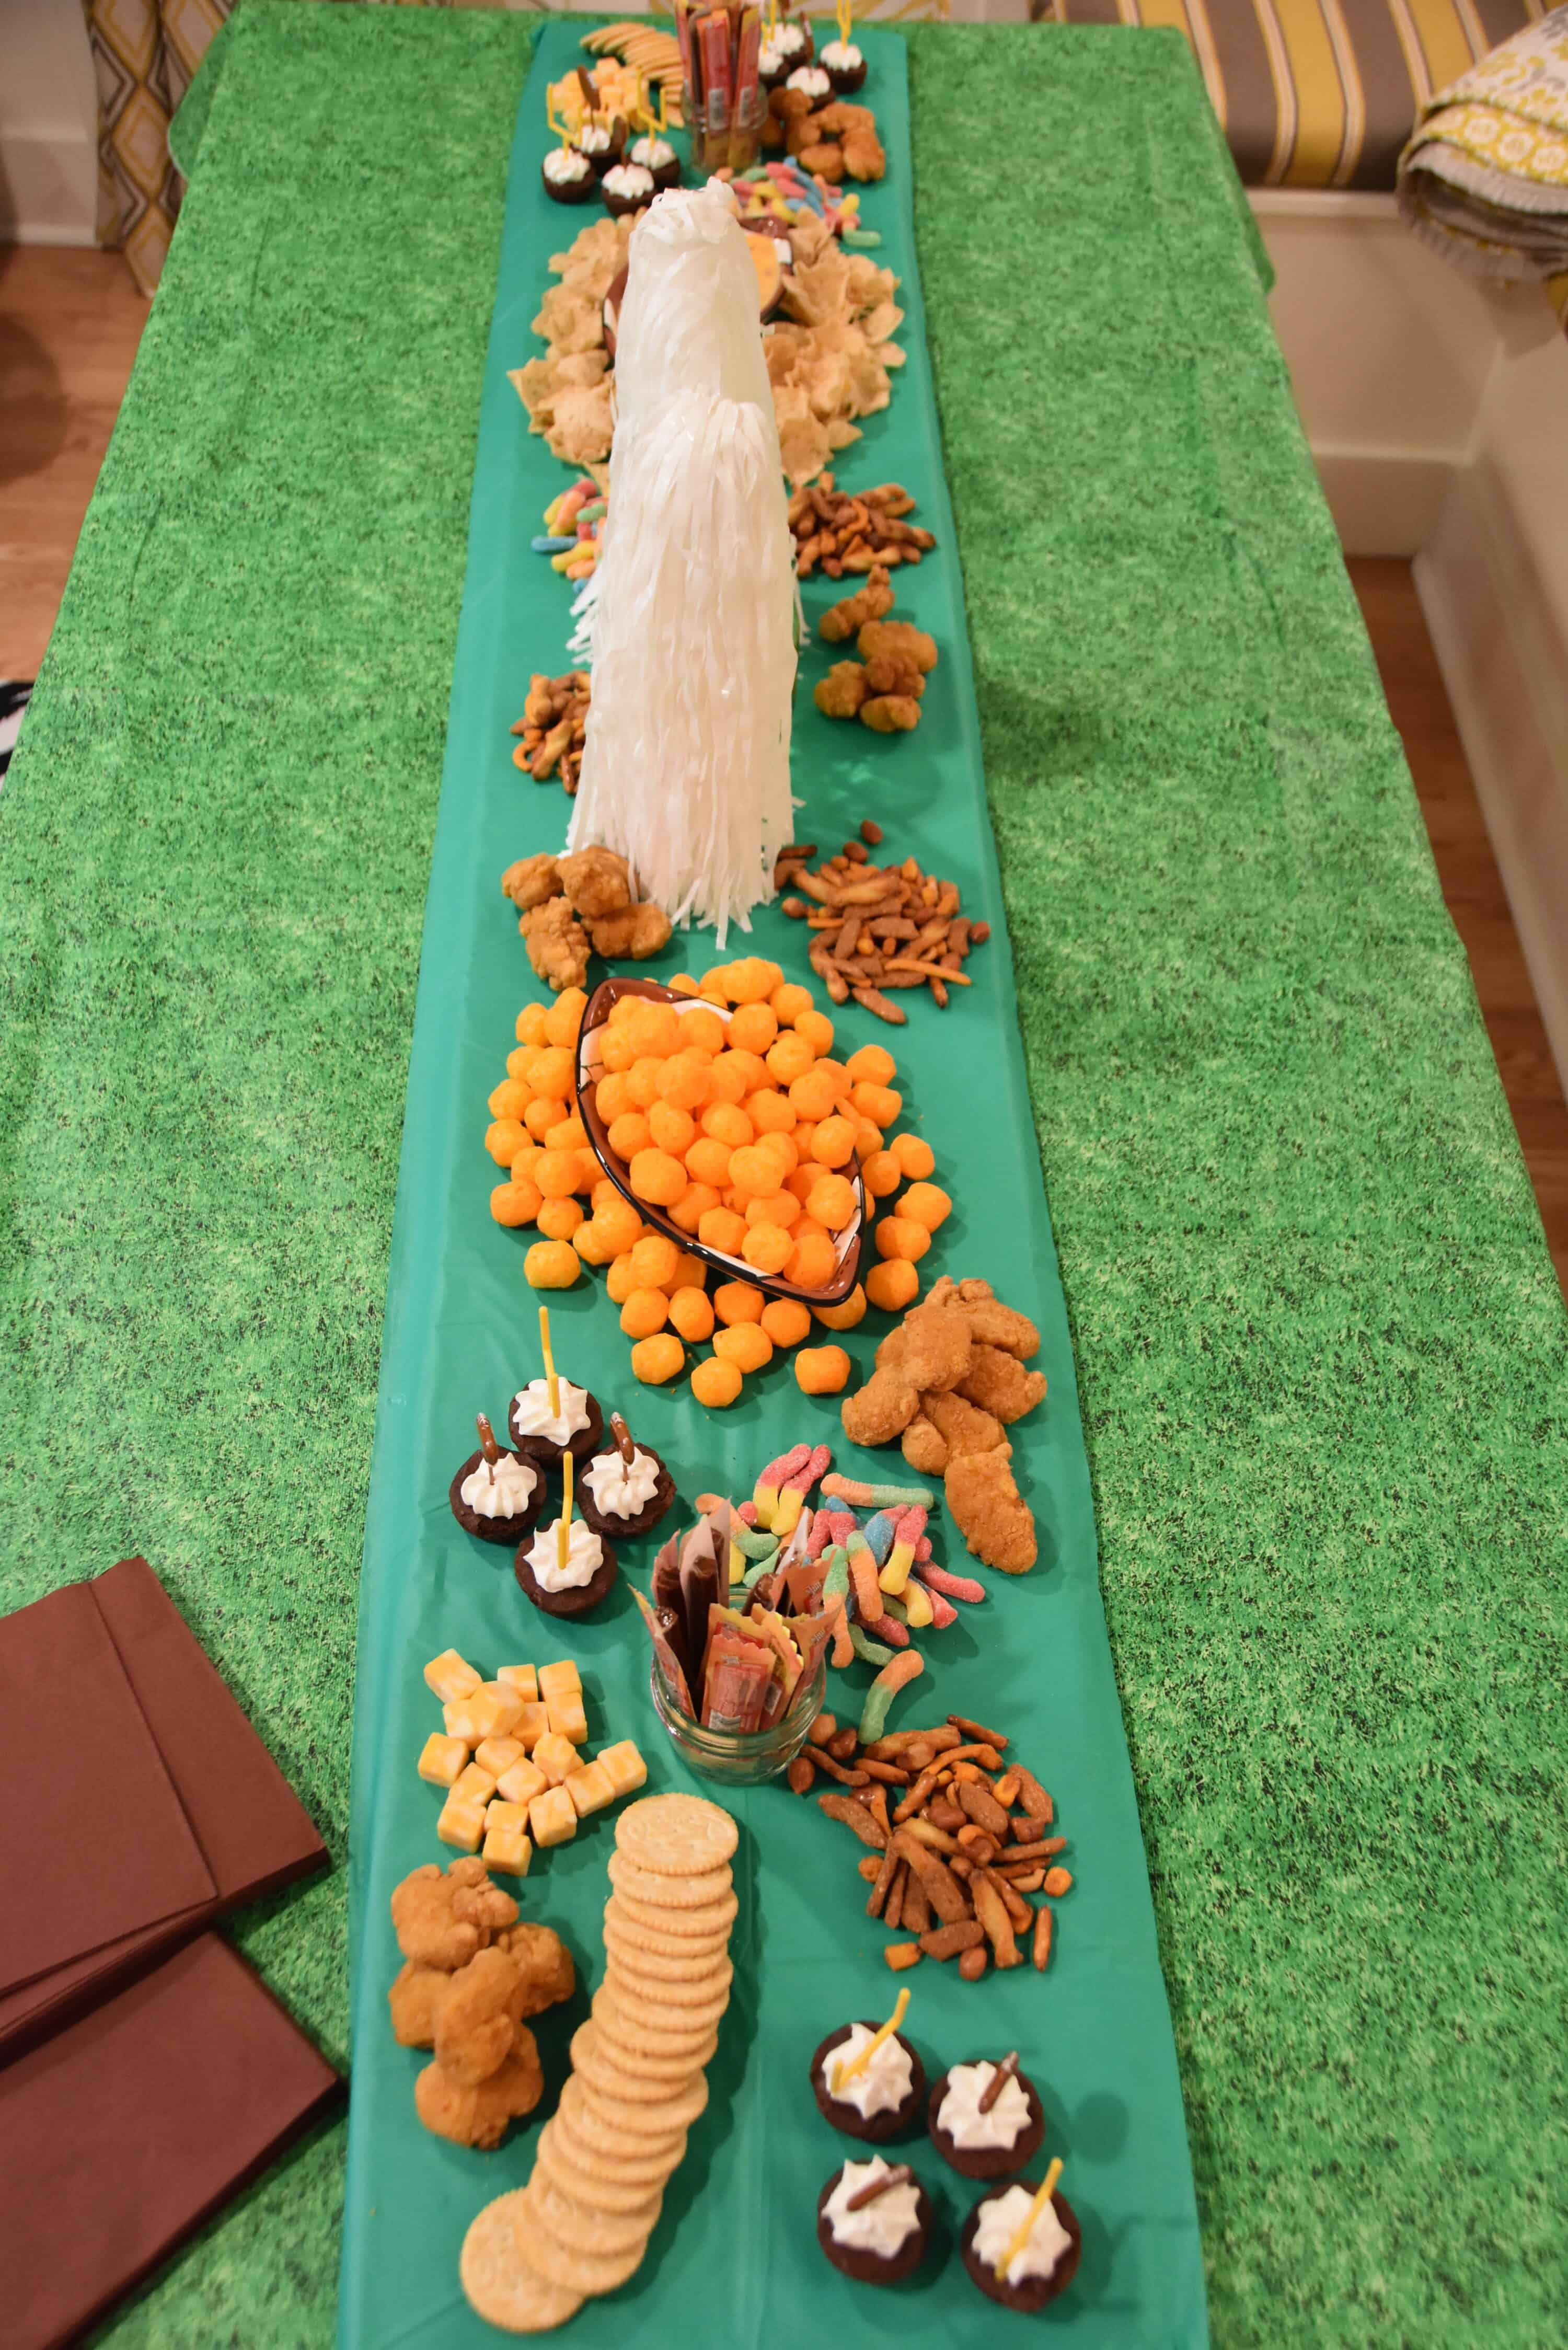 Winter Super Bowl Snack Centerpiece for Teens - Dixie Delights